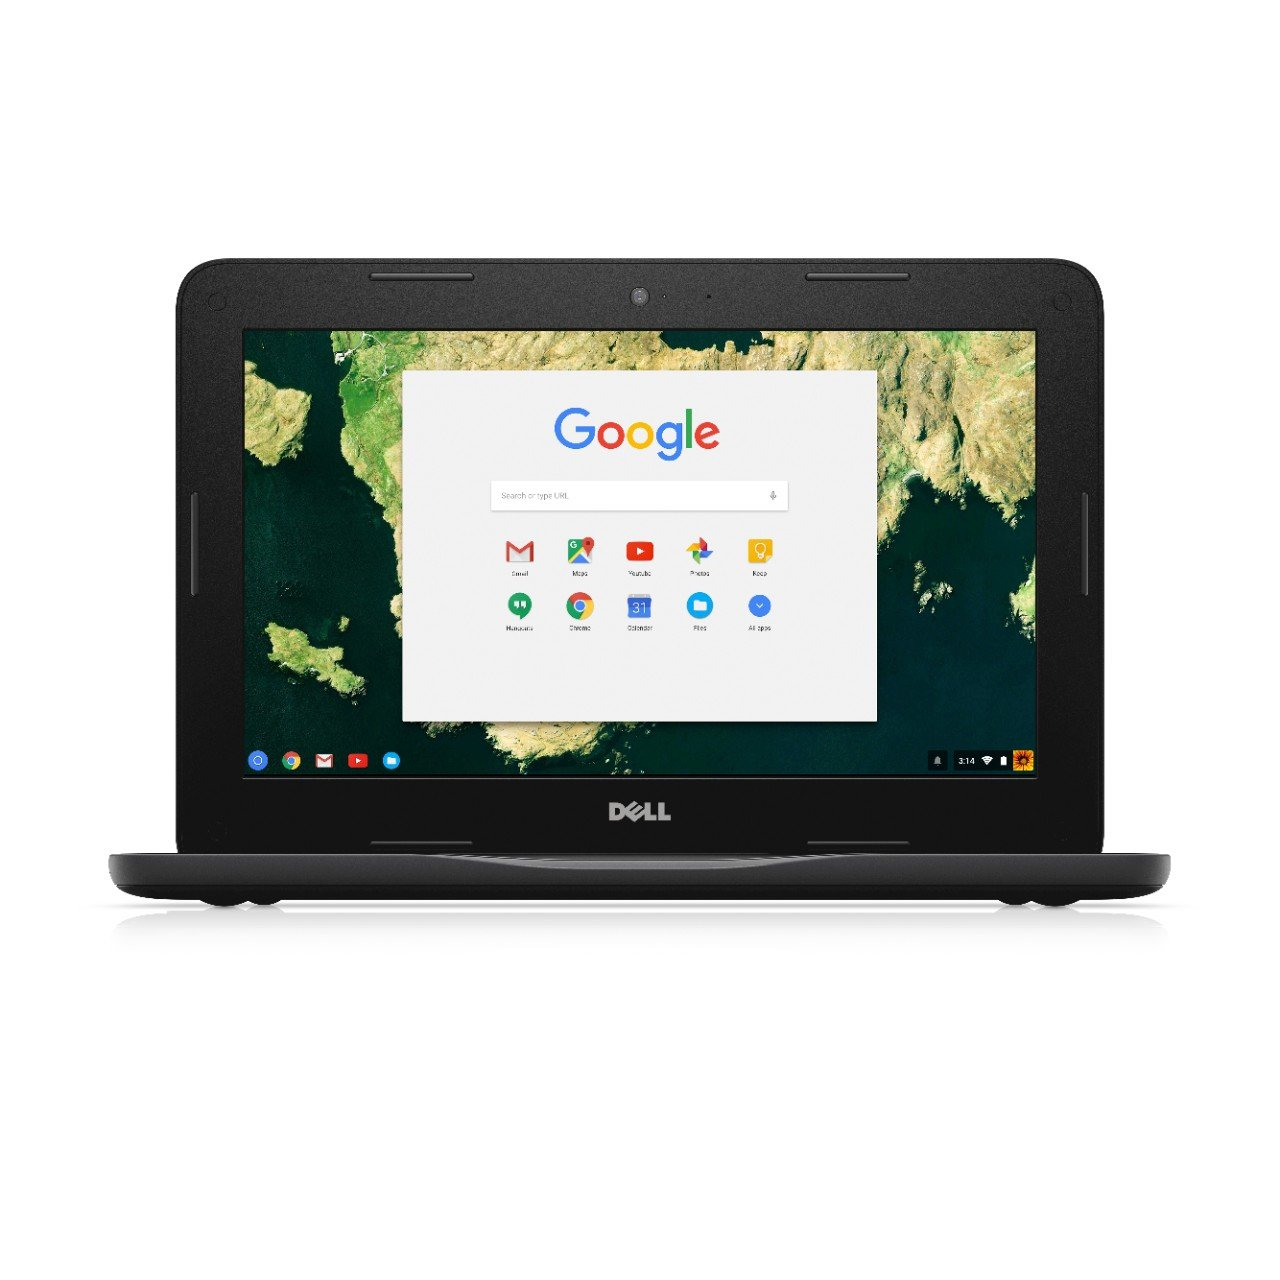 Dell Chromebook 11 3180 RH02N 11.6-Inch Traditional Laptop (Black)